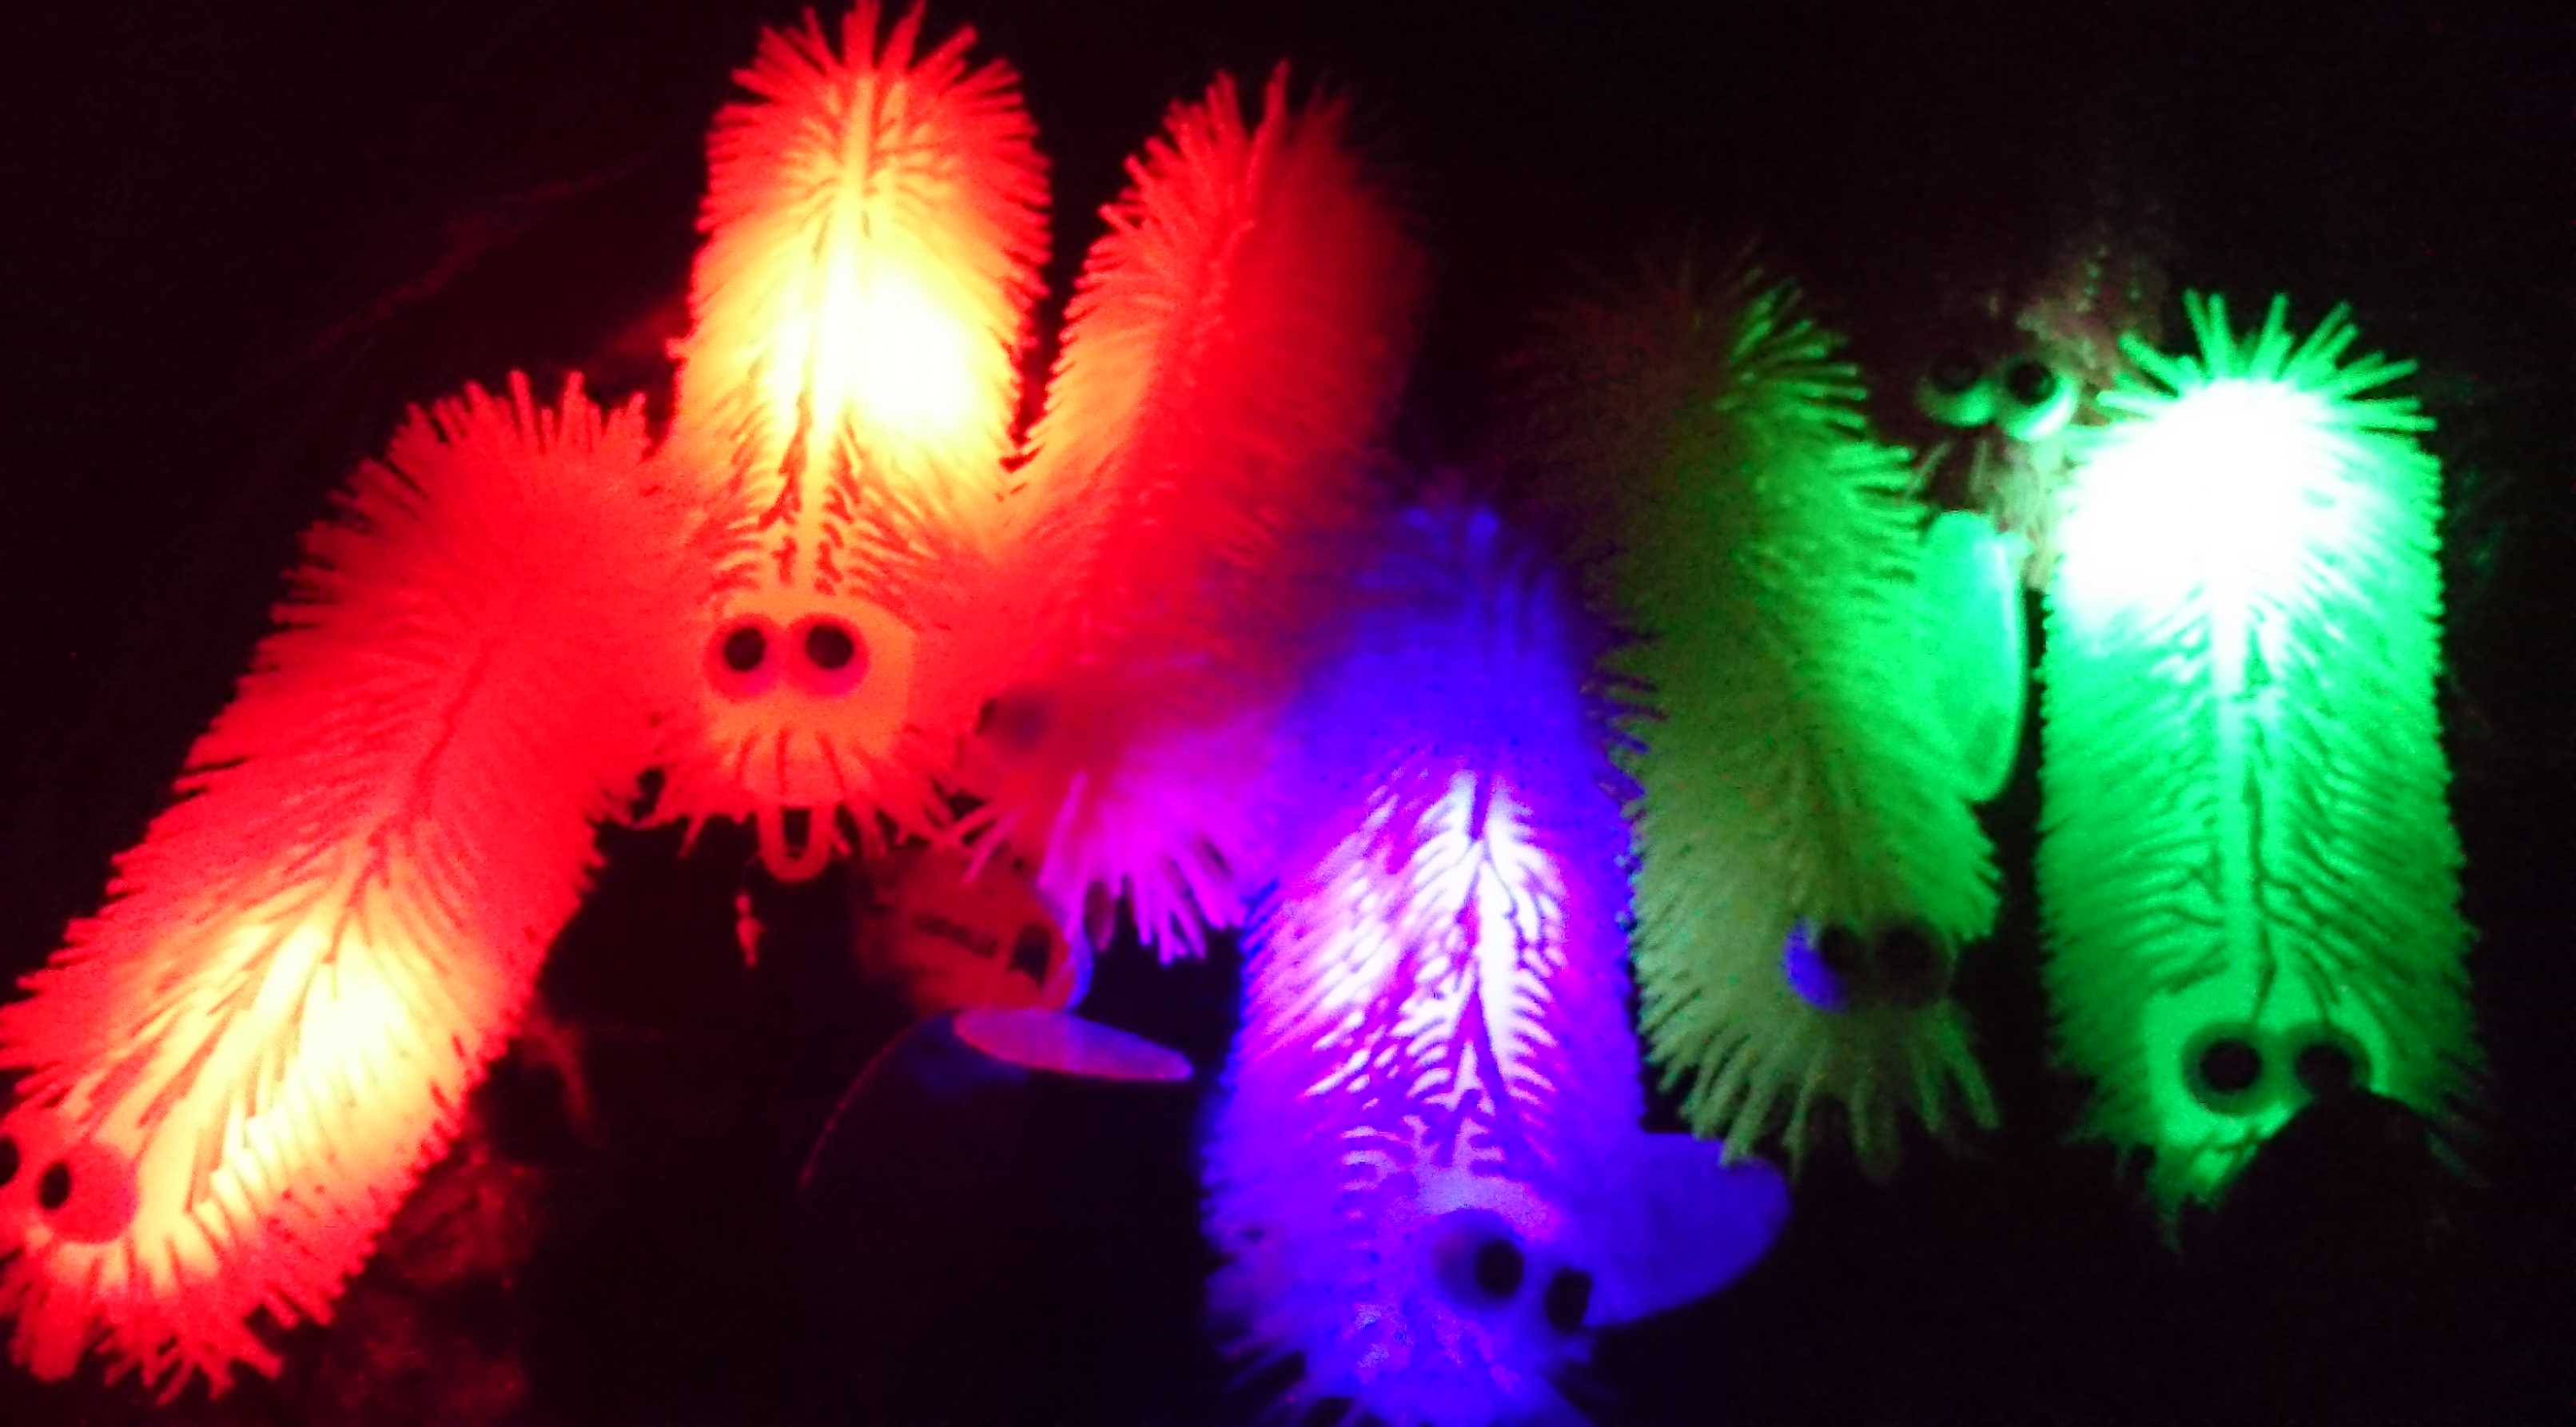 led.fluffy.chenille.raupe1 Luxus Ballon Mit Led Licht Dekorationen